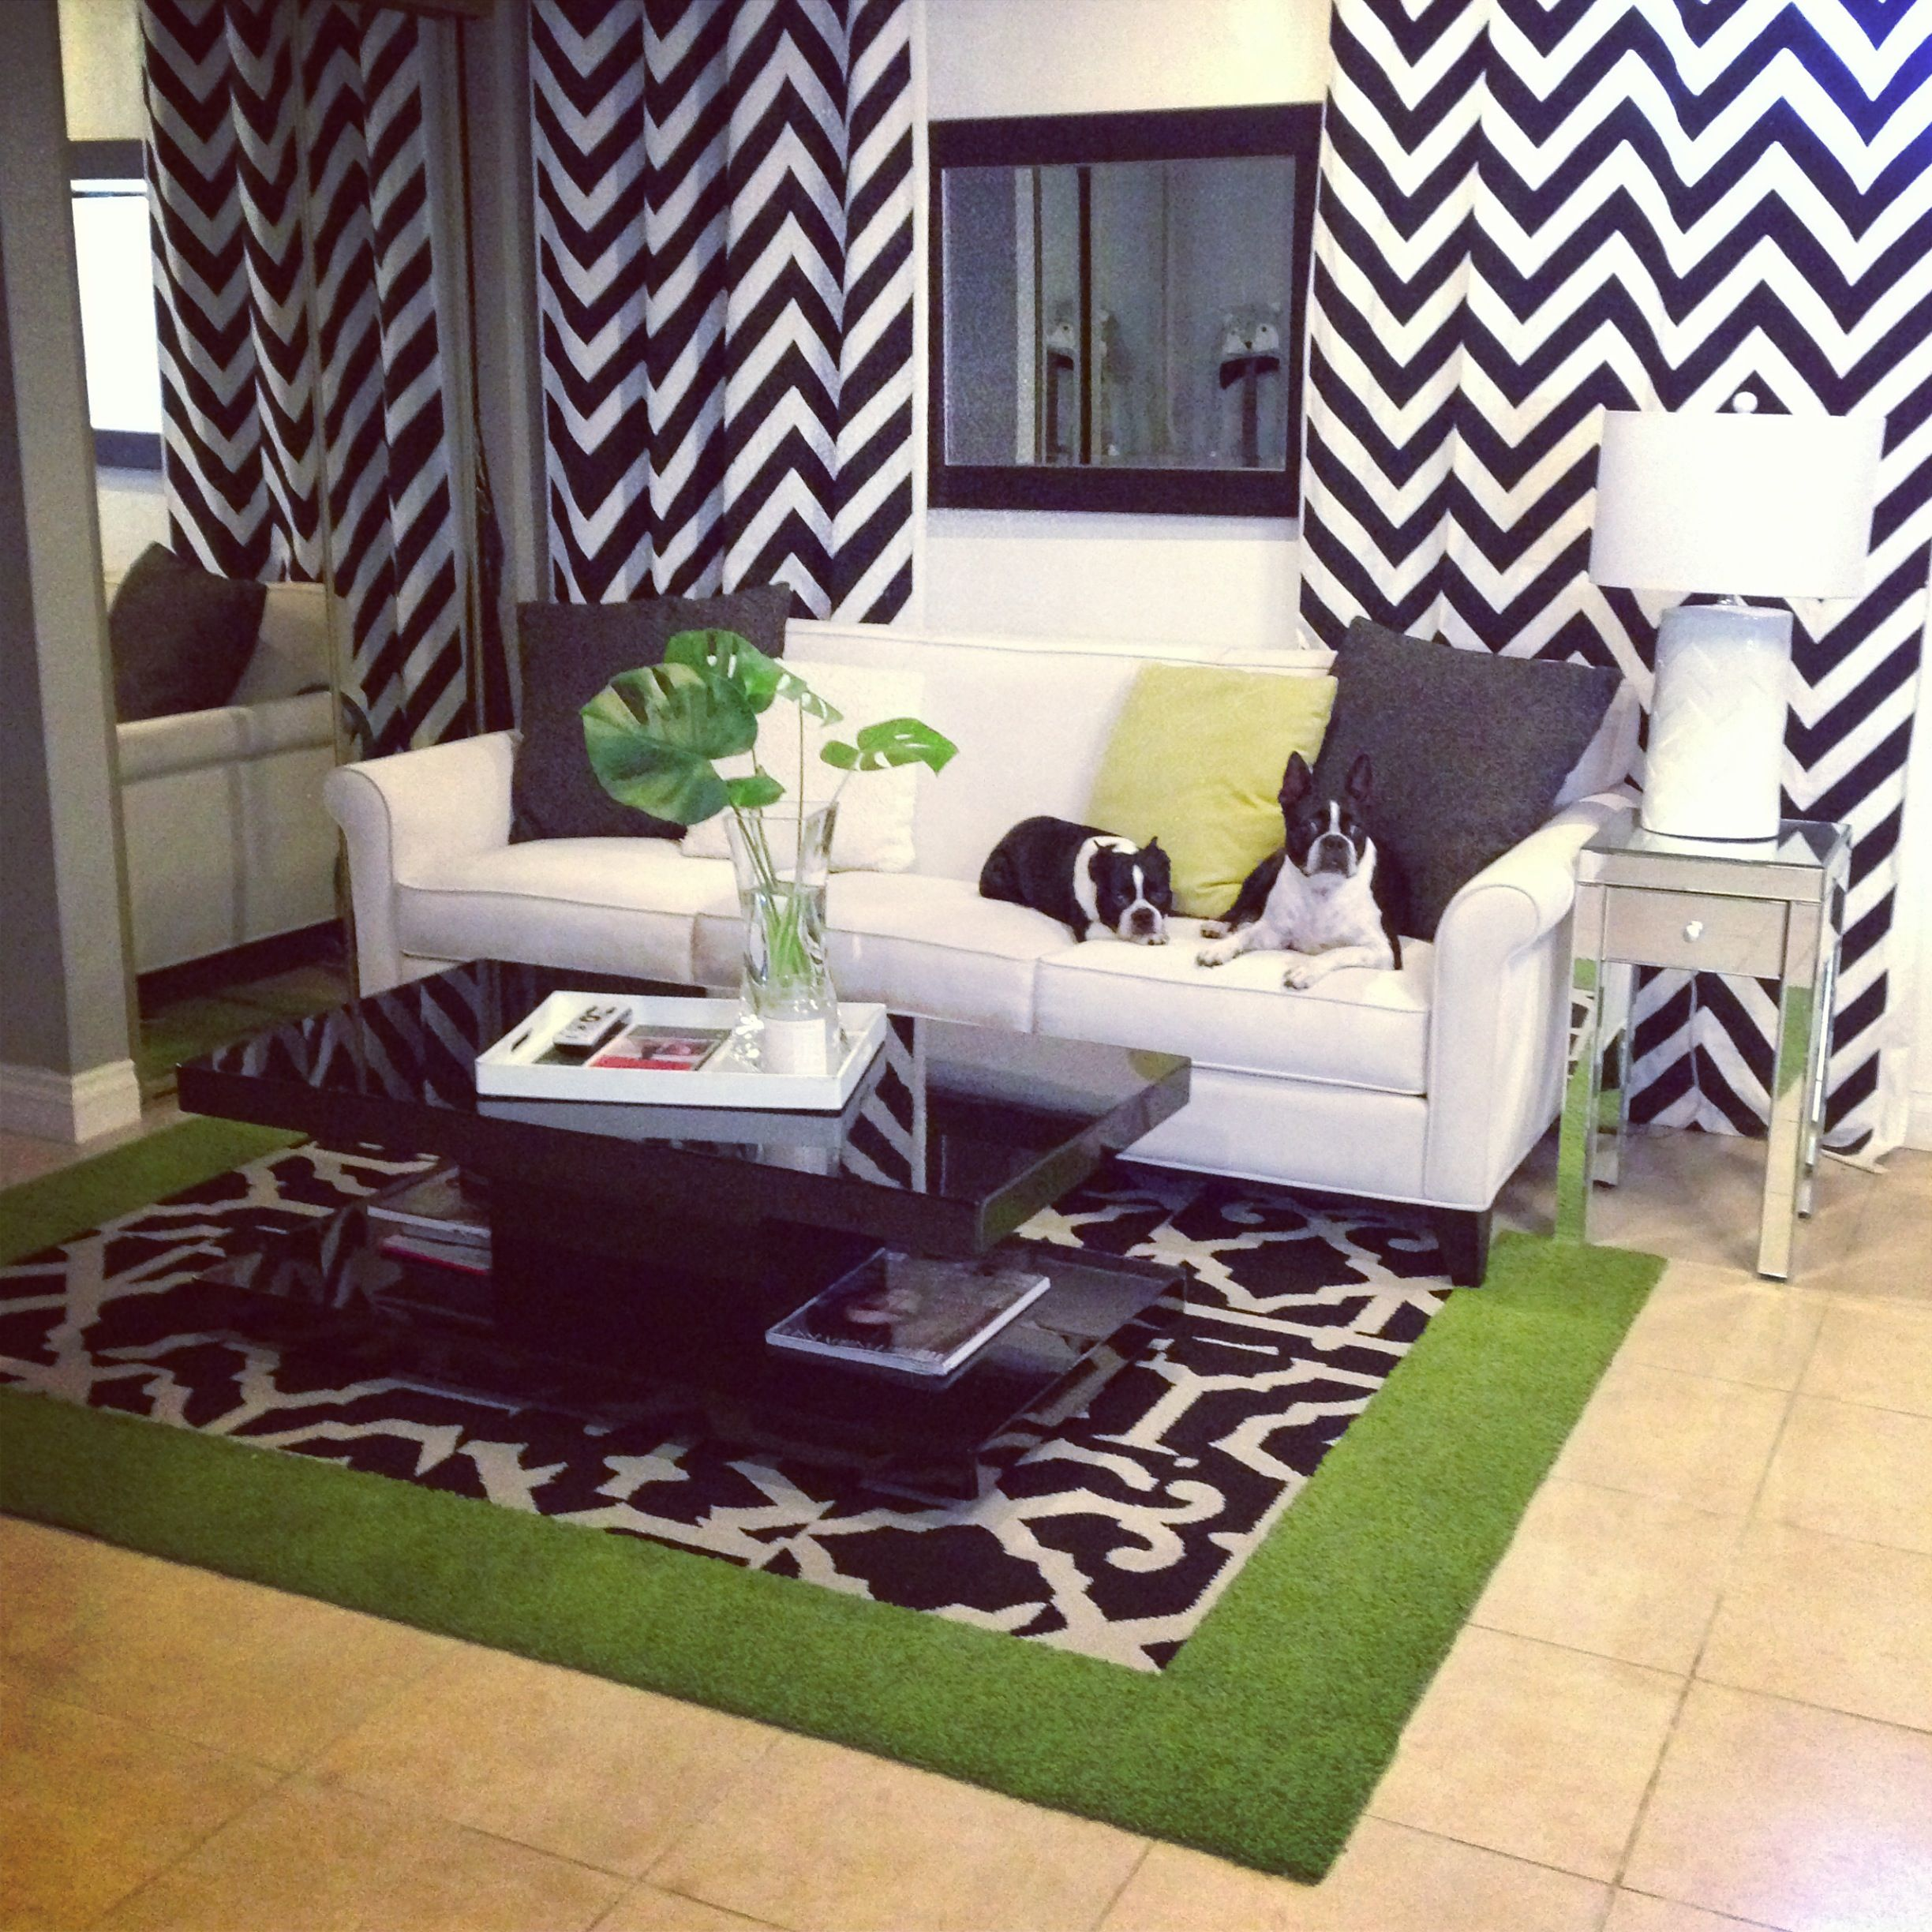 My DIY chevron curtains for my living room. | Home ...